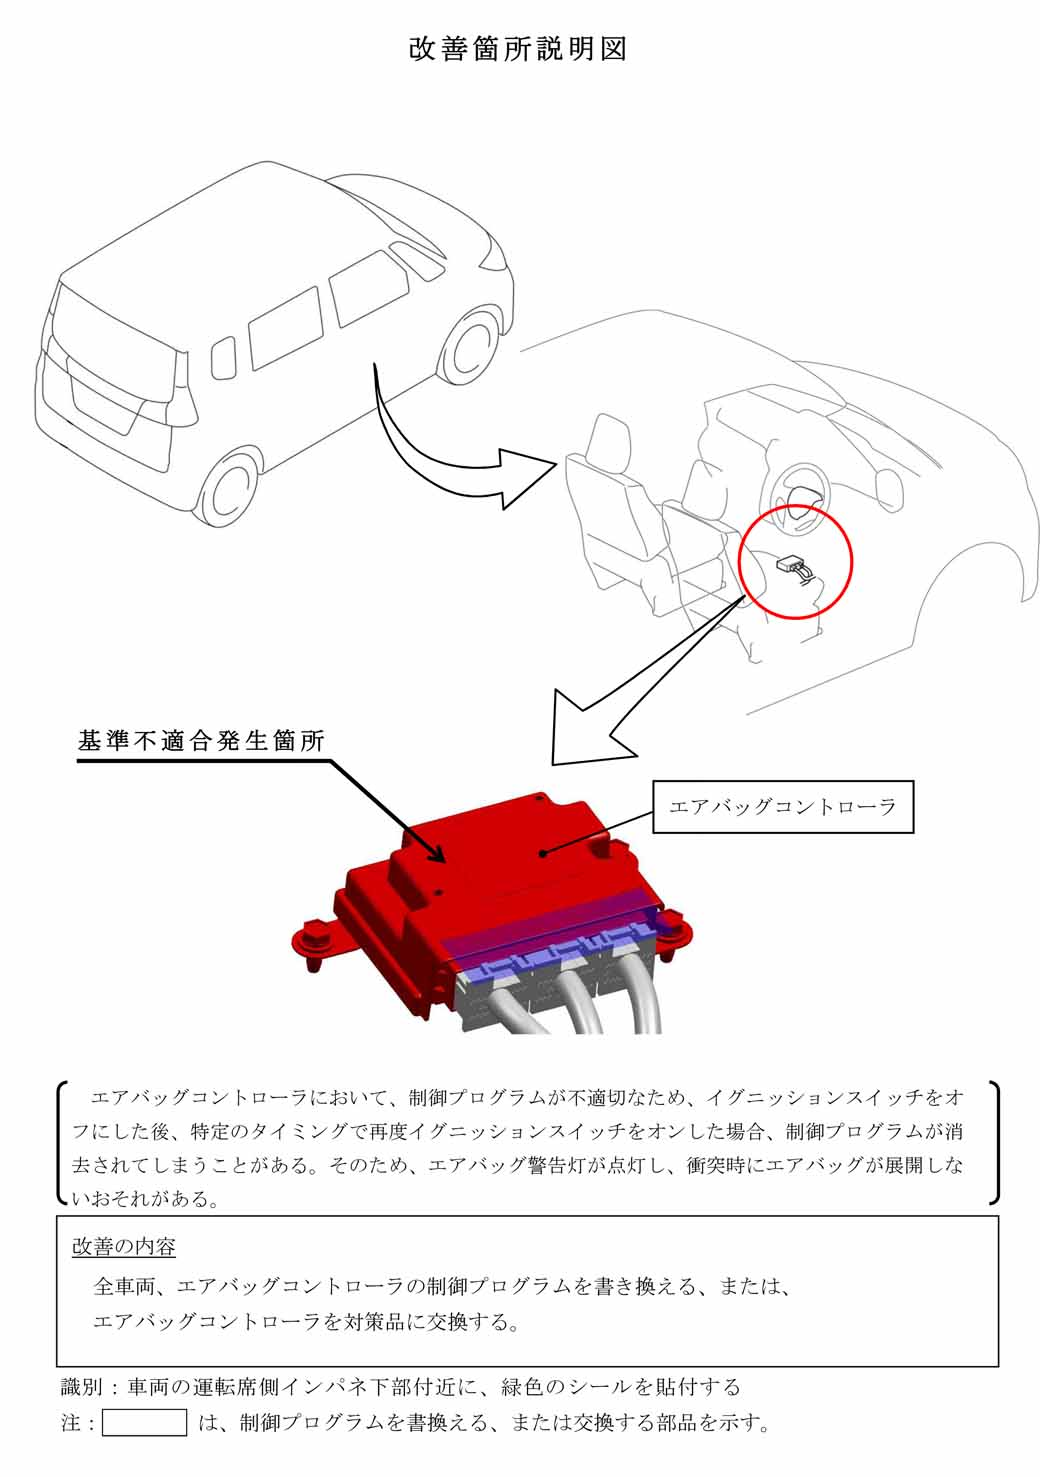 suzuki-solio-other-notification-of-the-recall-failure-of-the-air-bag-device-51438-units20160529-1